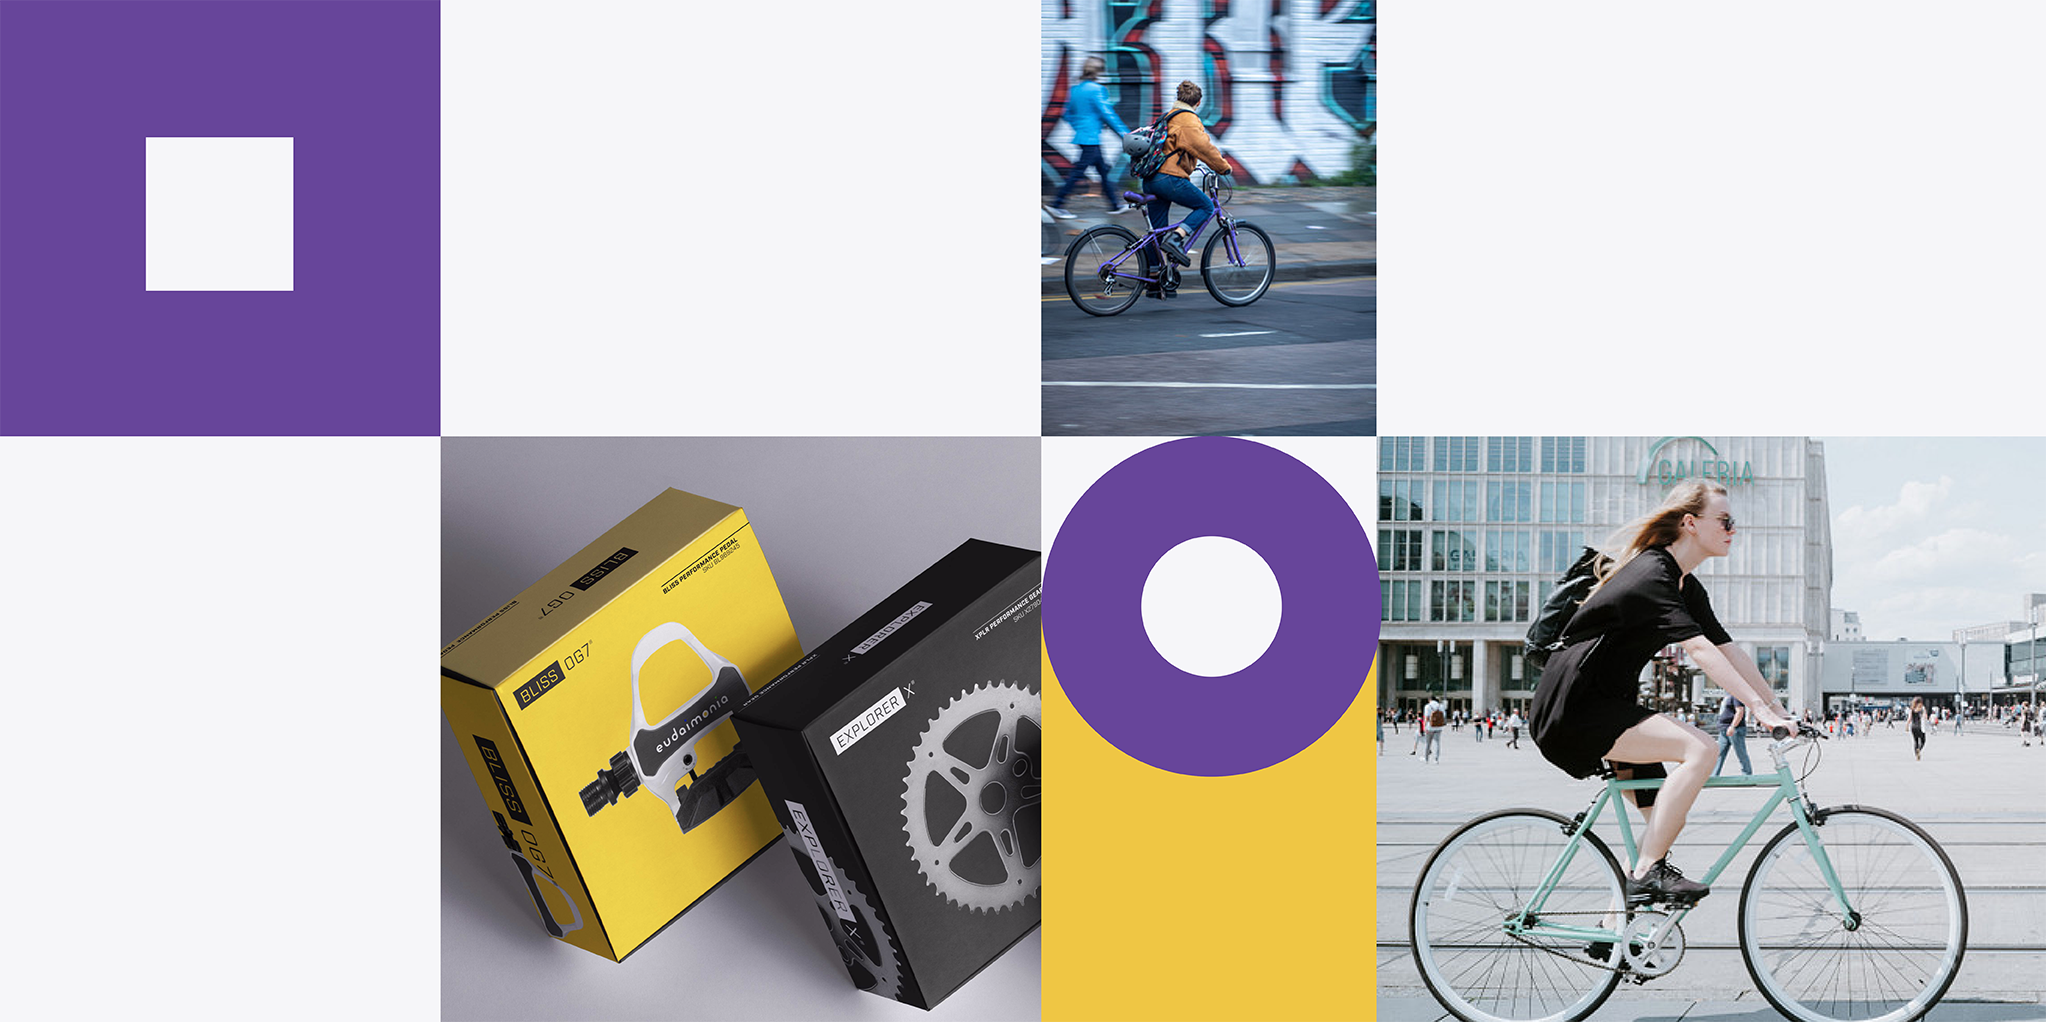 Graphic banner with images of bicycle parts packaging and people riding bikes on the street.